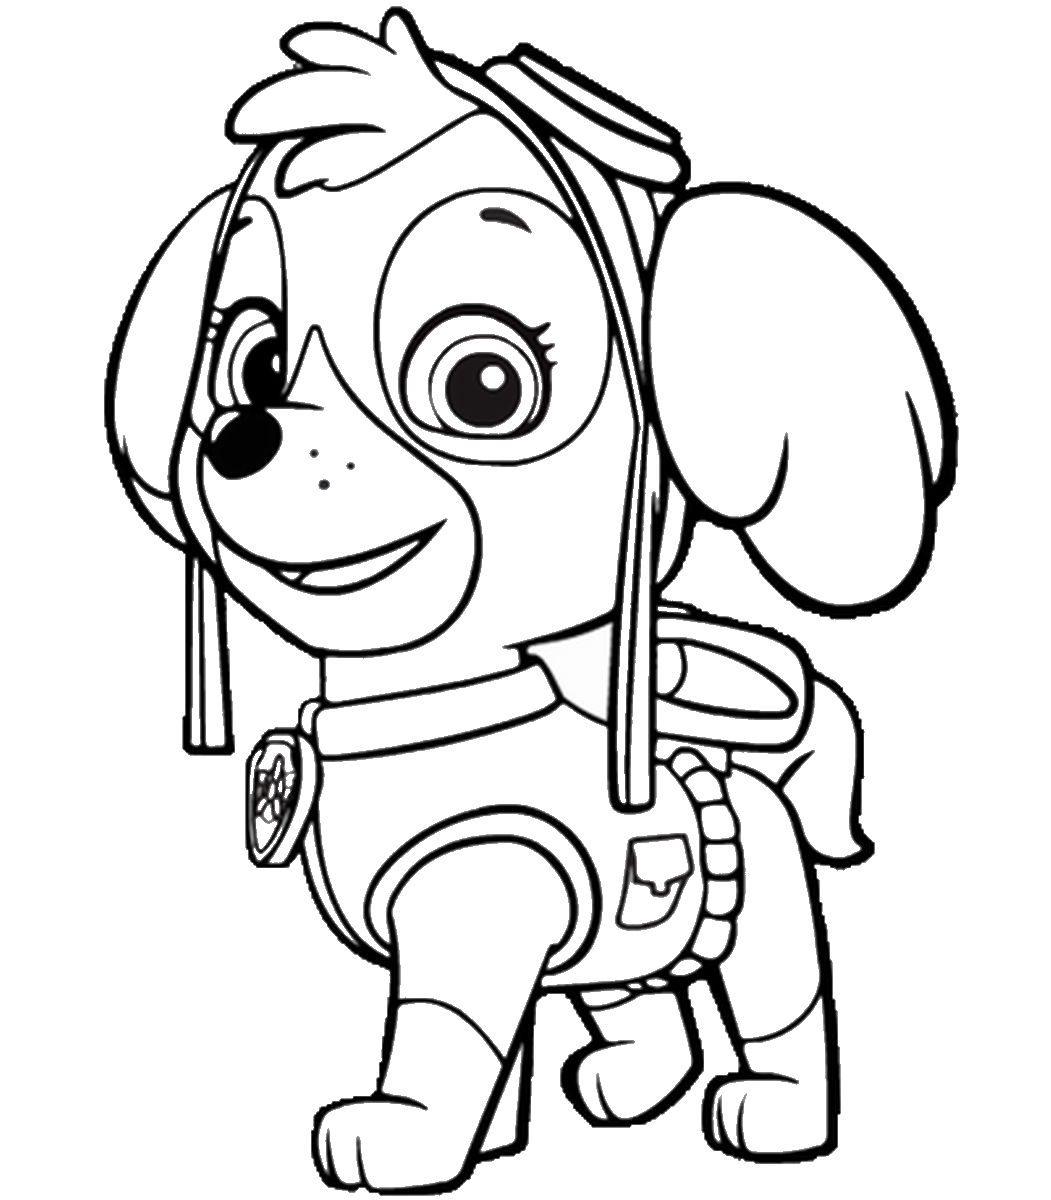 paw patrol coloring pages paw patrol coloring pages coloring page paw coloring pages patrol